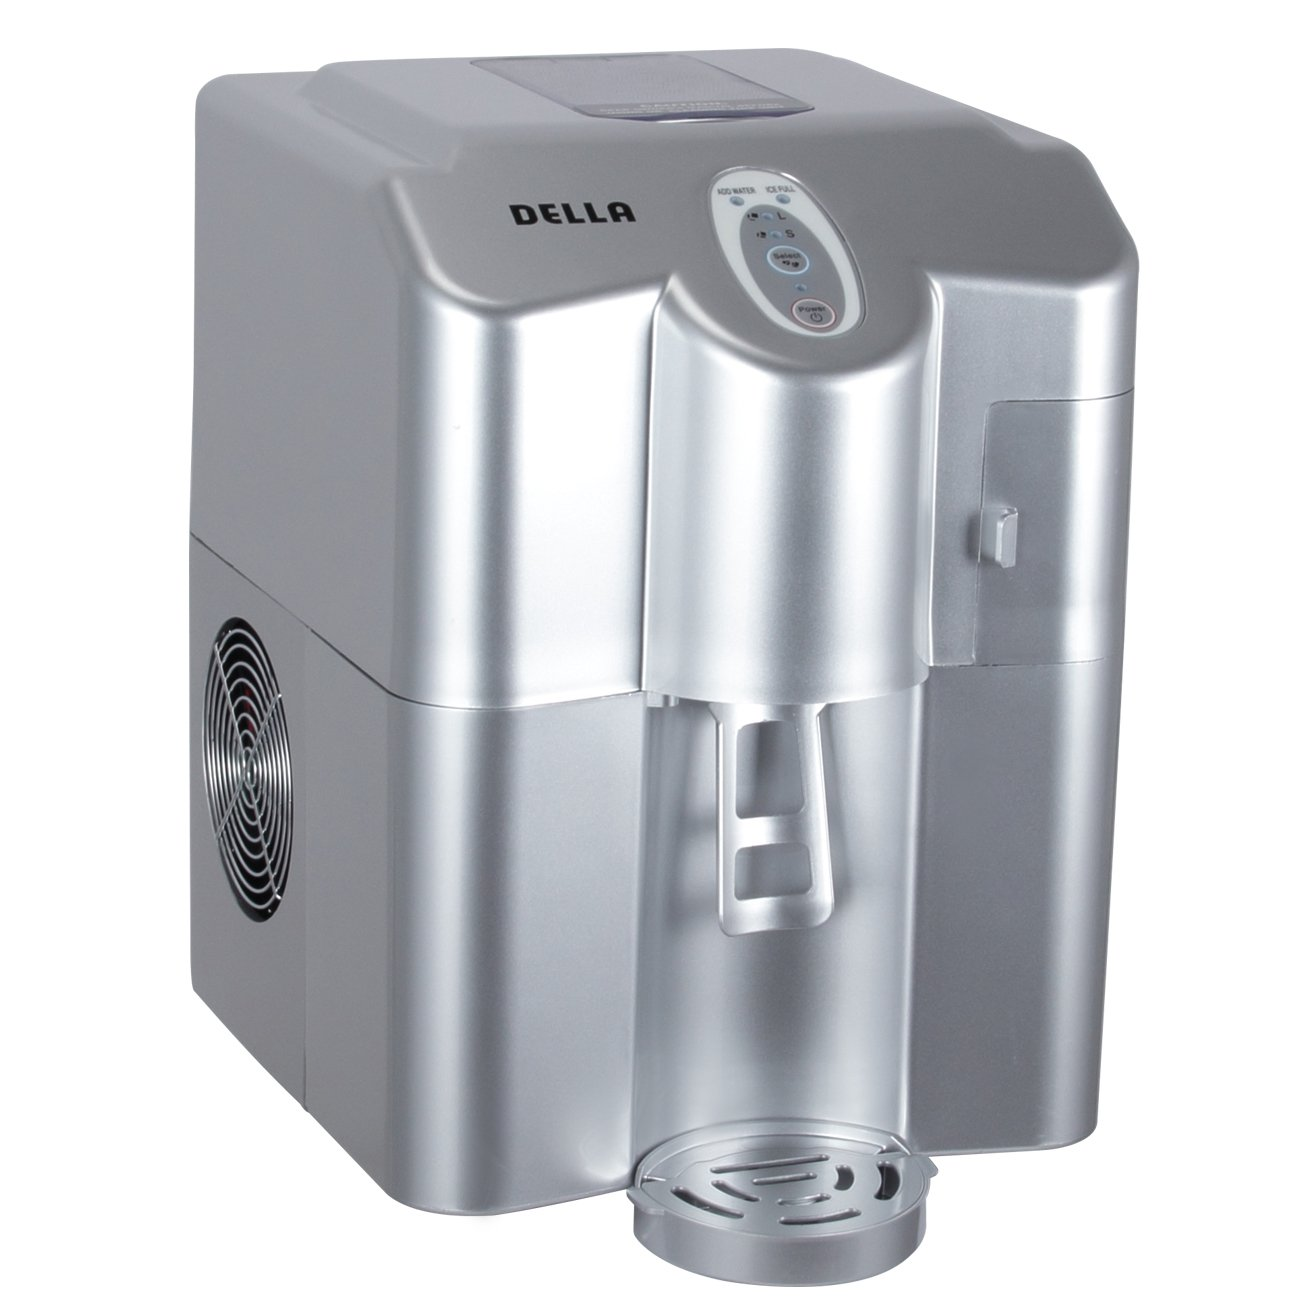 DELLA© Compact Portable CounterTop Ice Maker Dispenser Freestanding Cube Machine